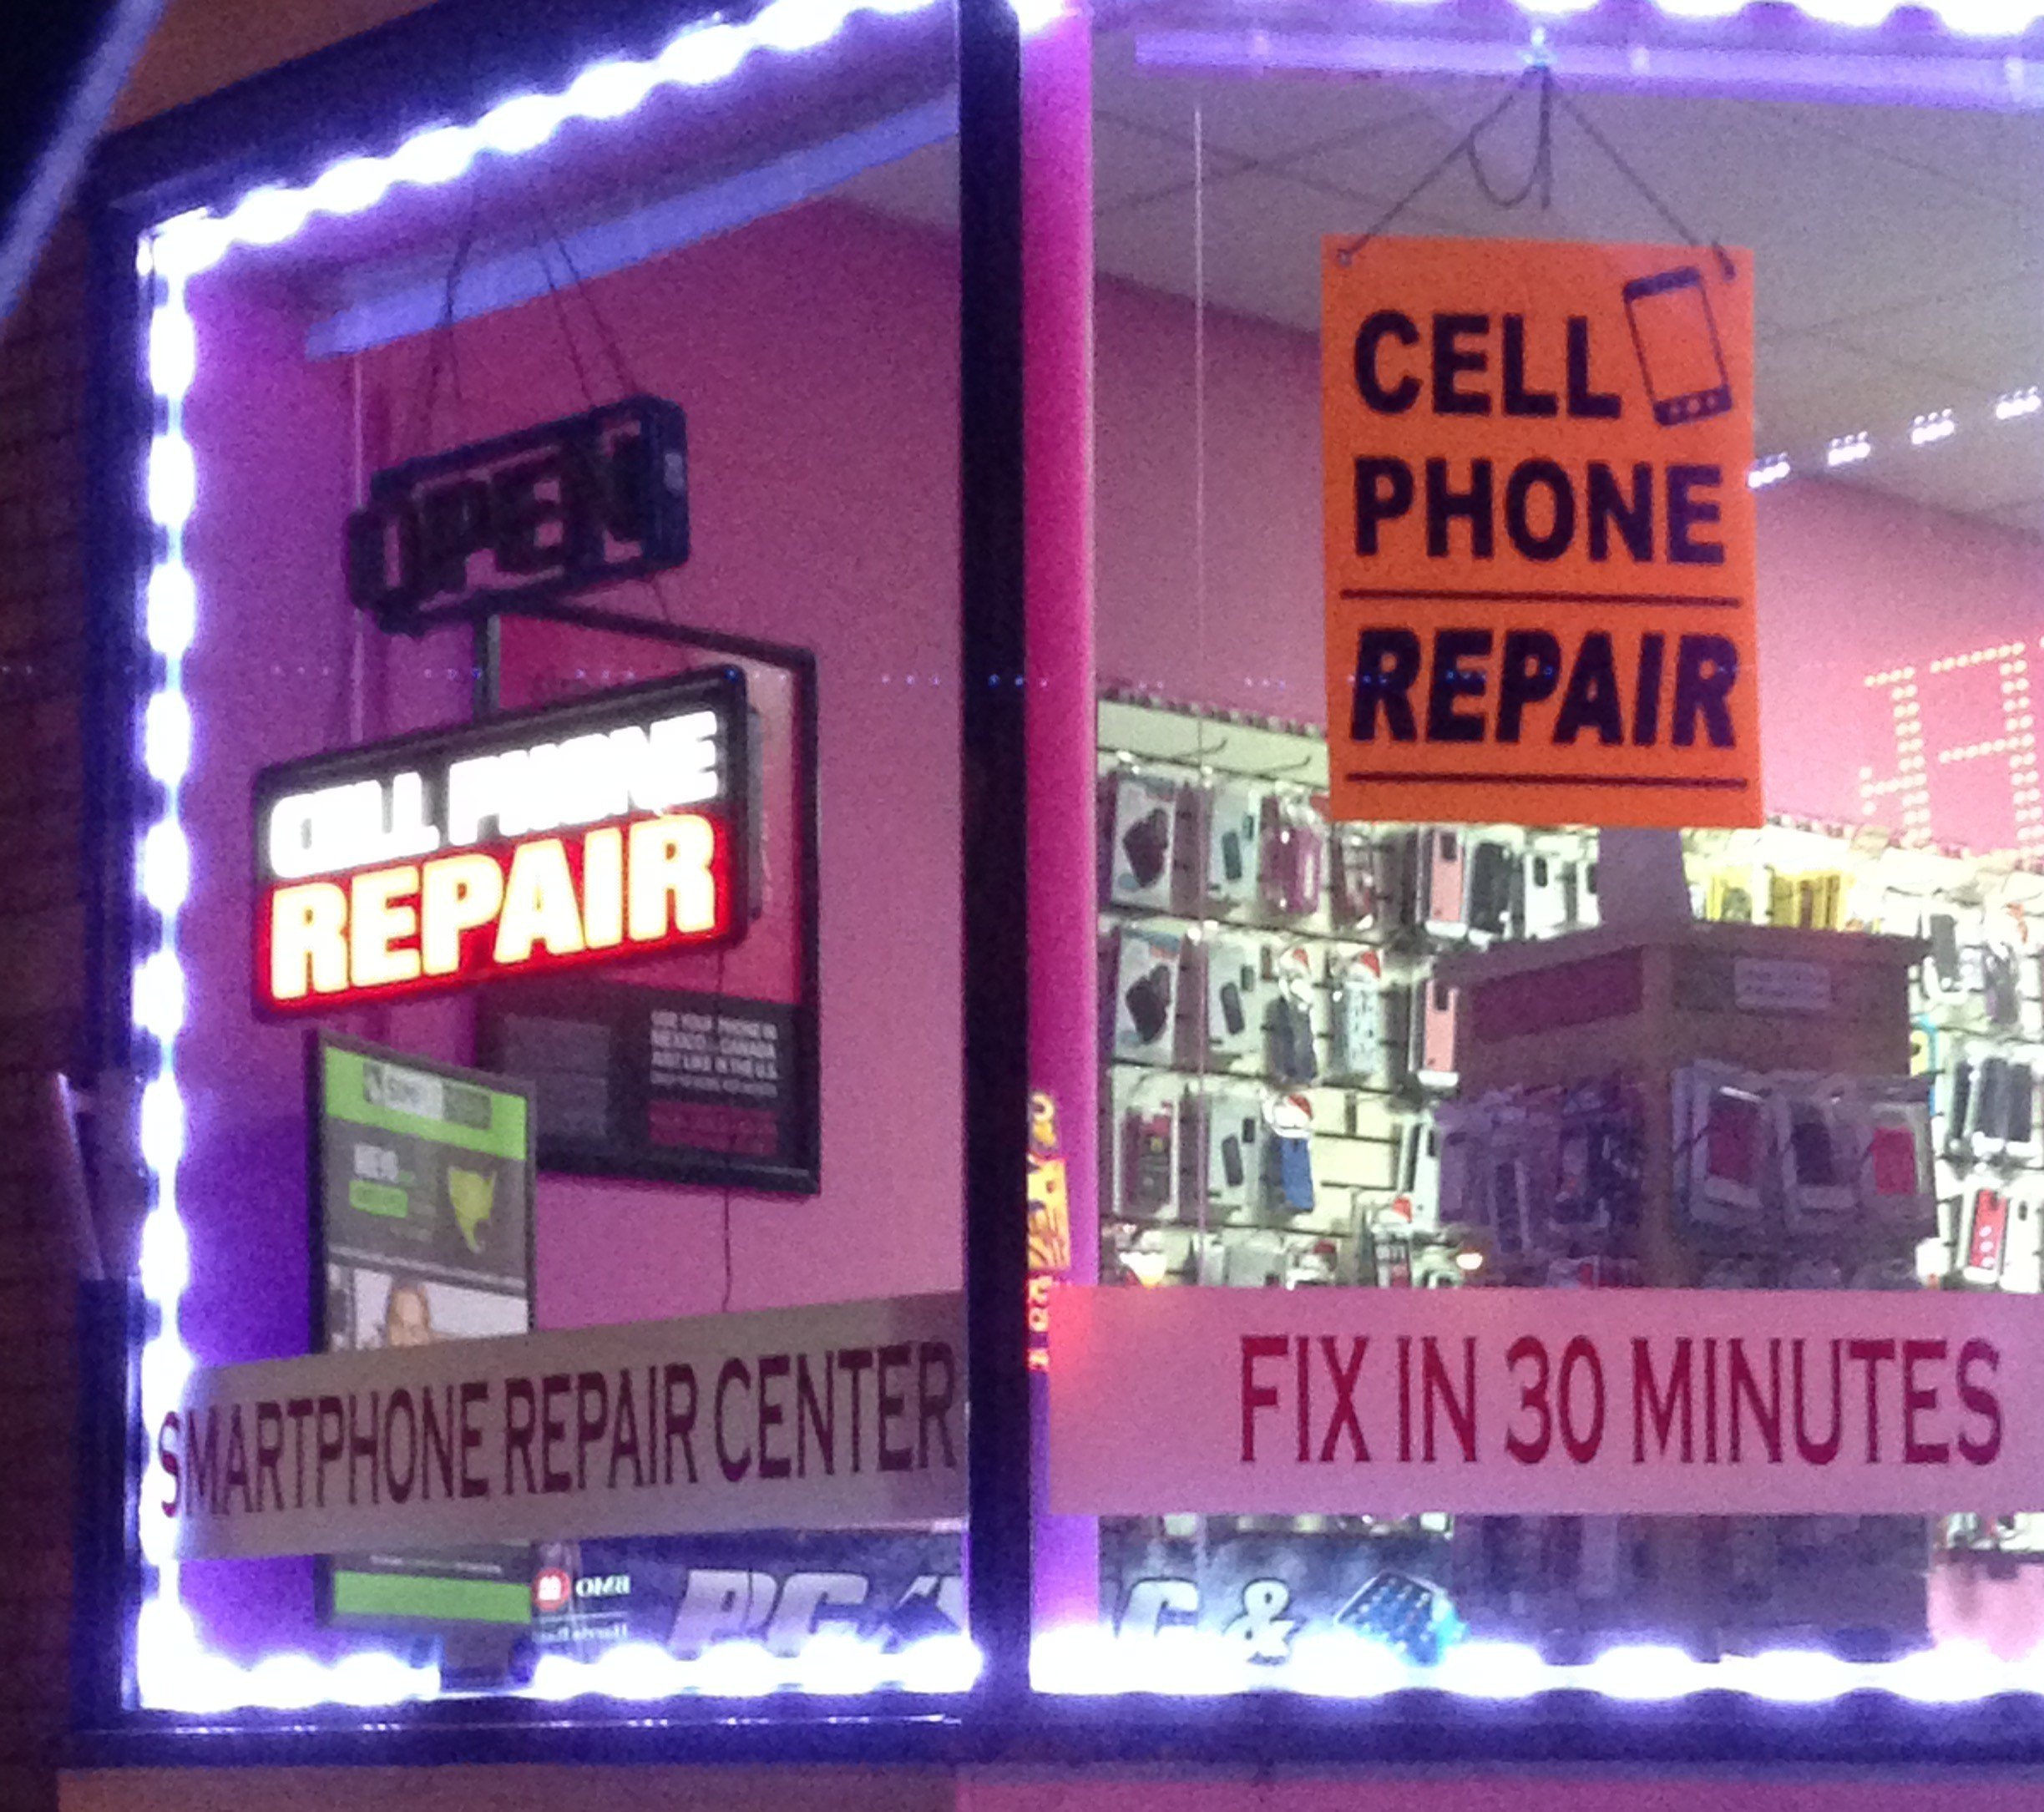 How to source mobile device parts for a repair business